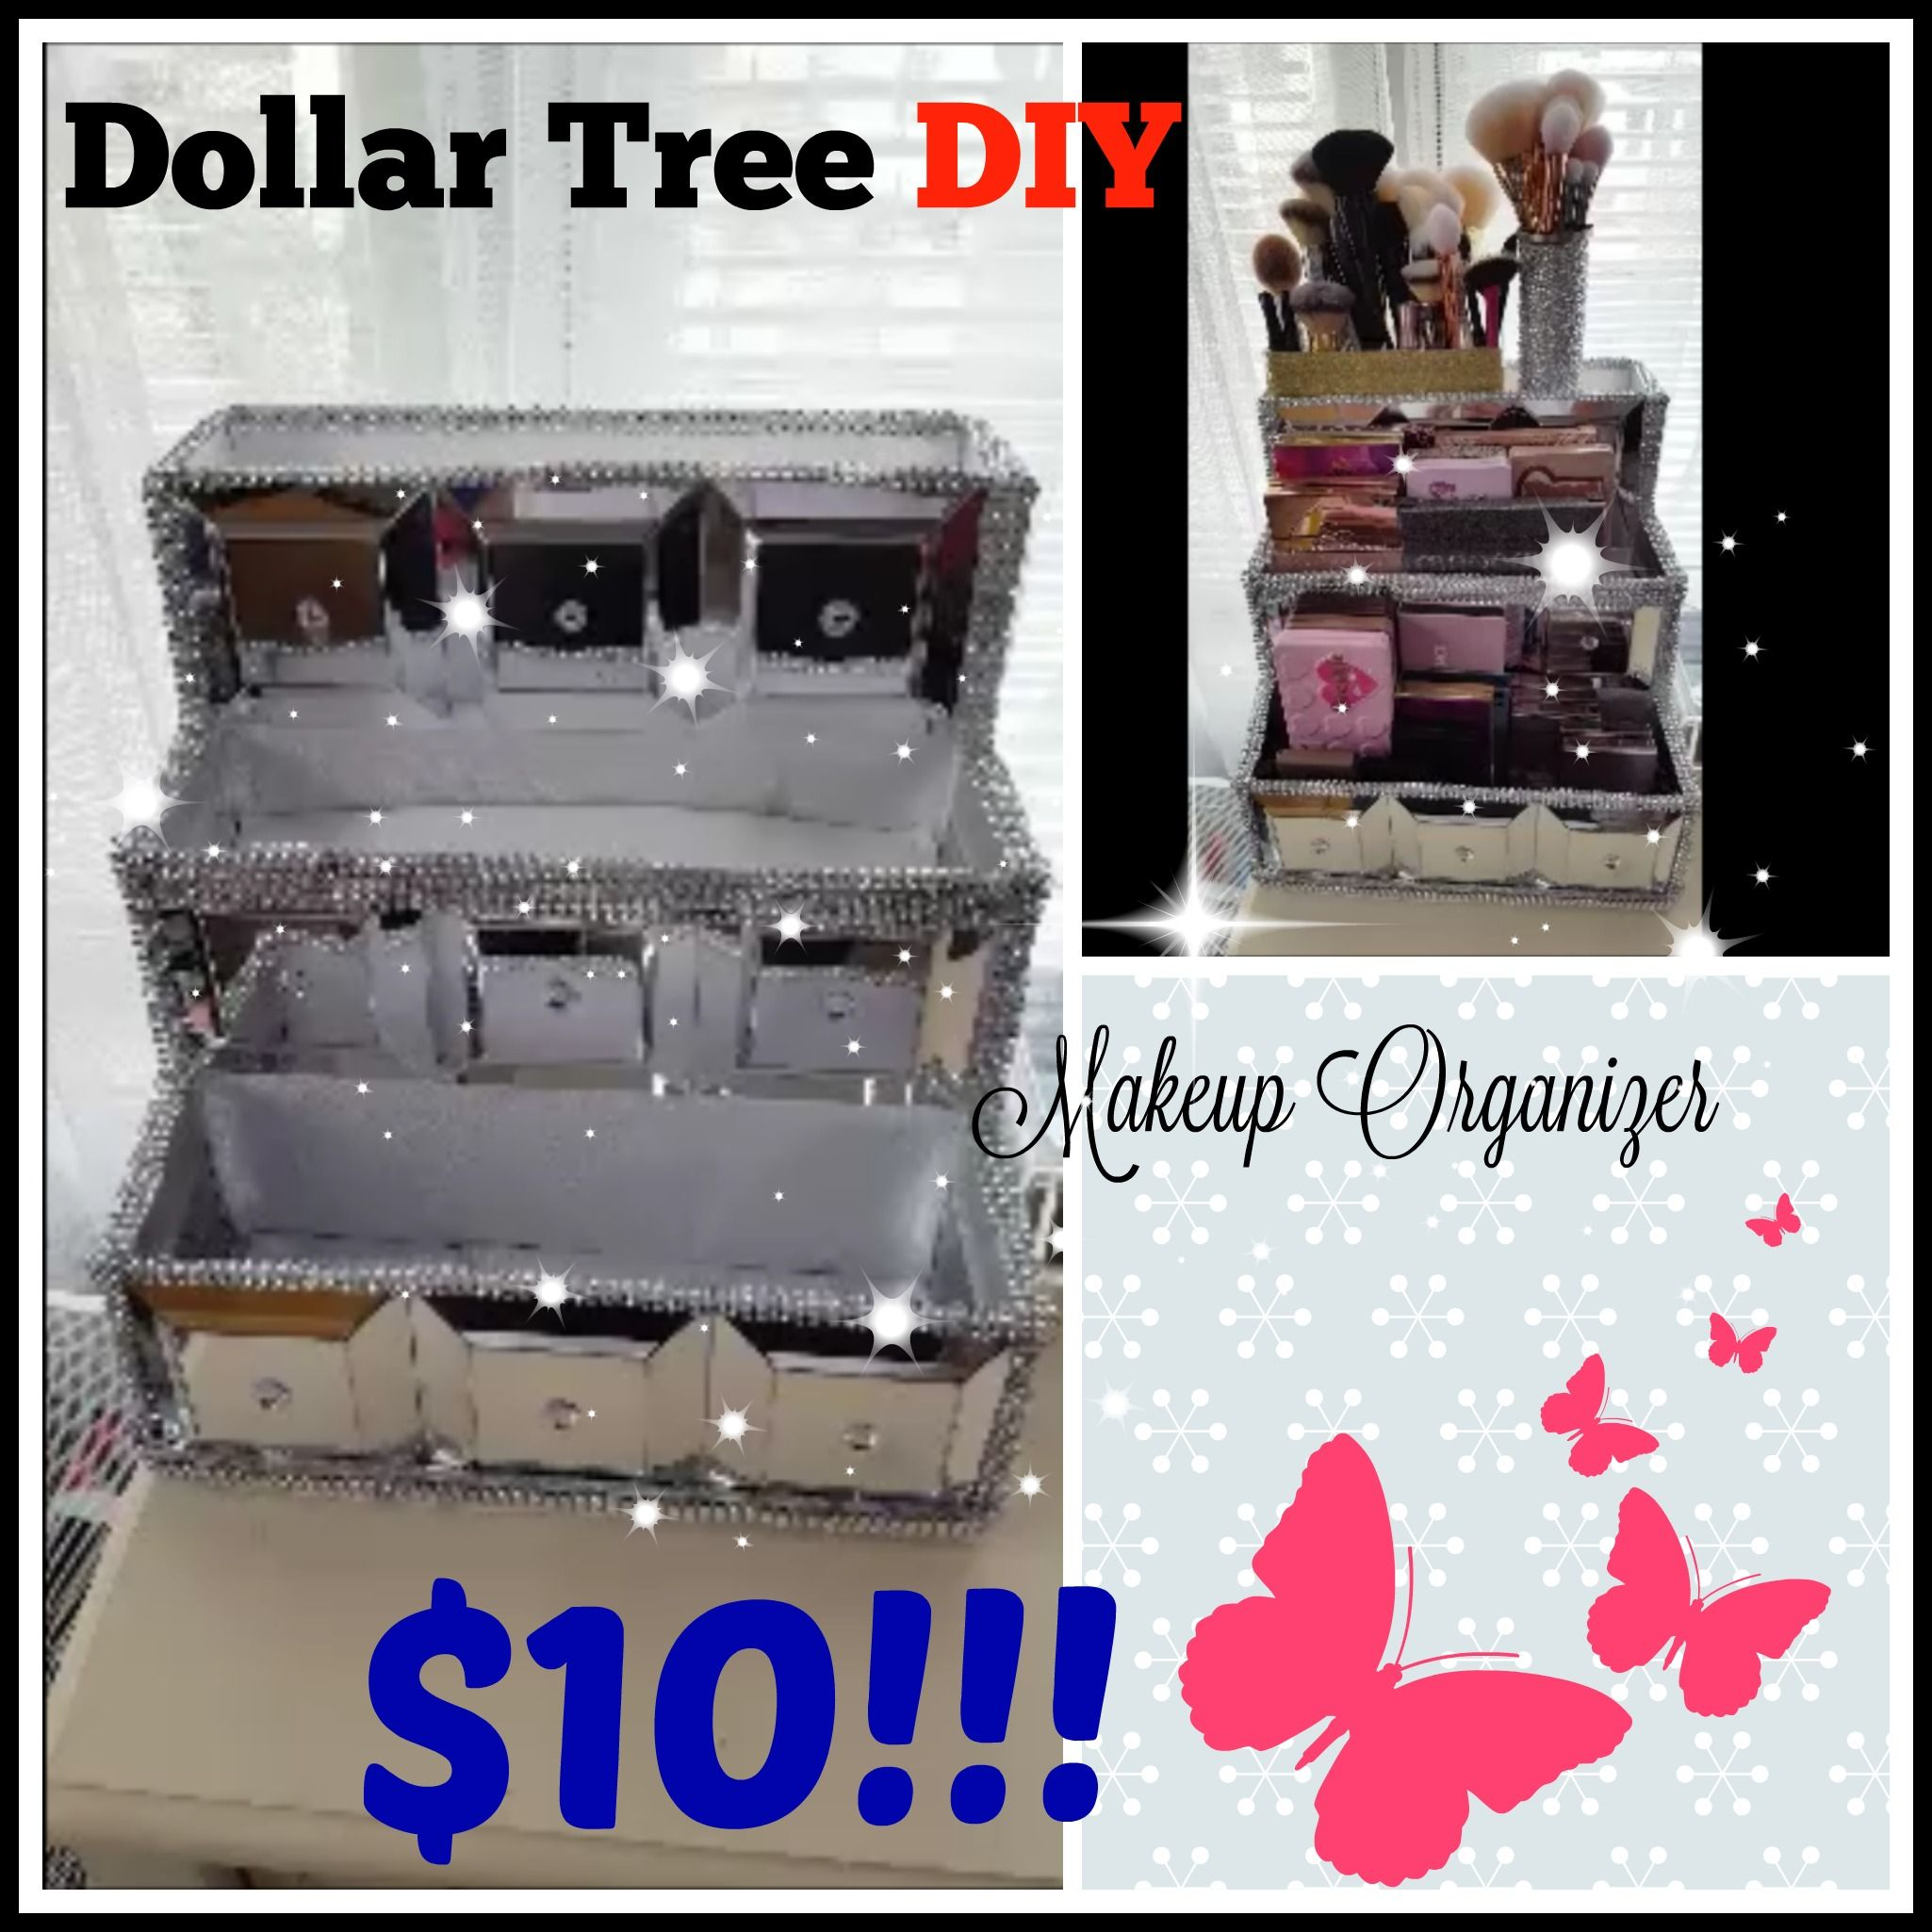 Uploaded To Rachaelcpr On You Tube Diy Makeup Storage Diy Makeup Organ Diy Makeup Storage Organizers Dollar Store Diy Organization Diy Makeup Storage